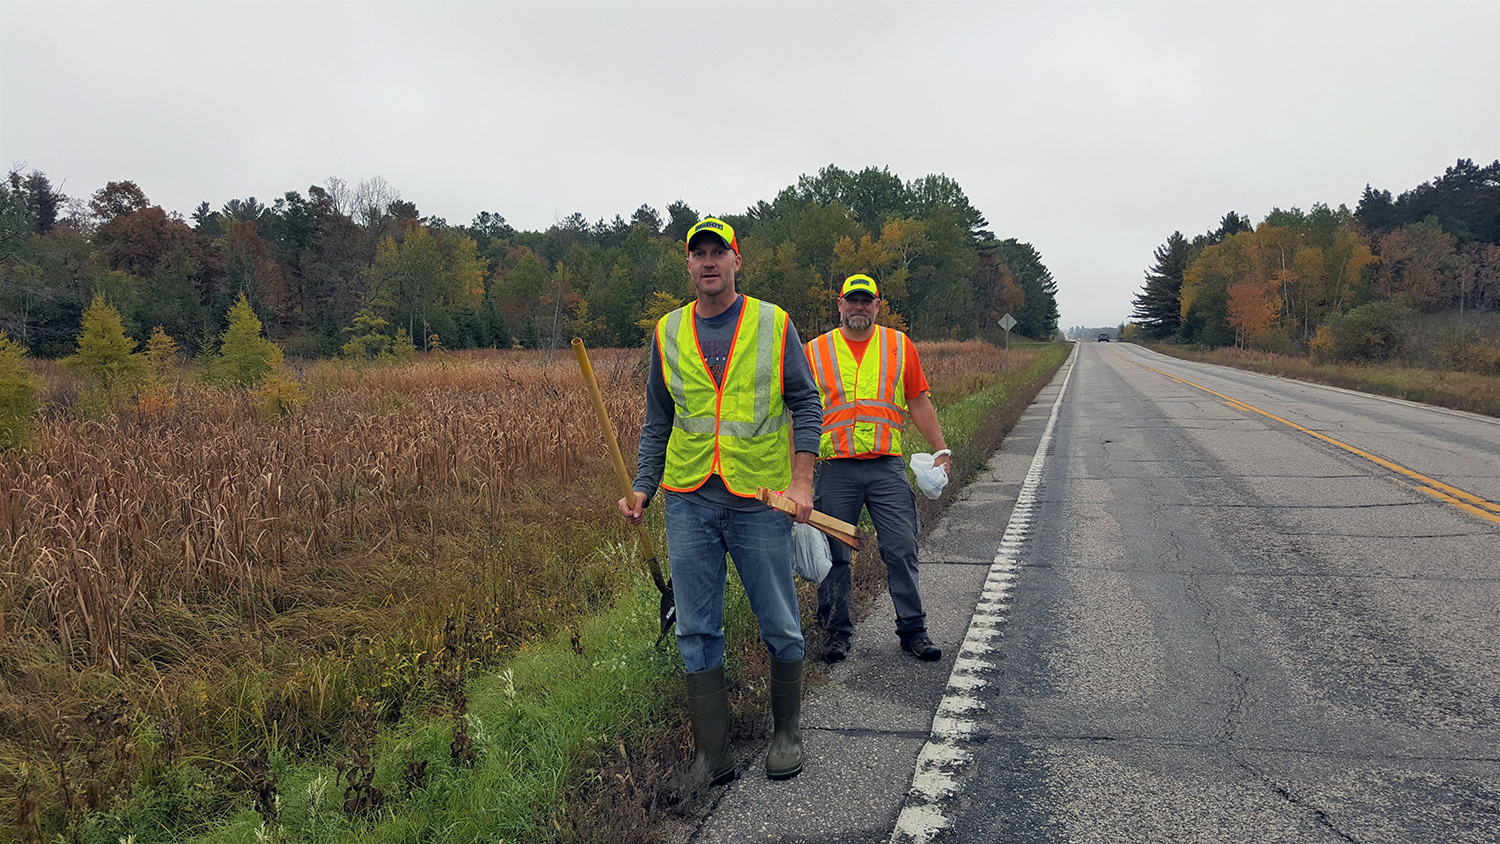 Photo: MnDOT crew members, standing near grass next to a road